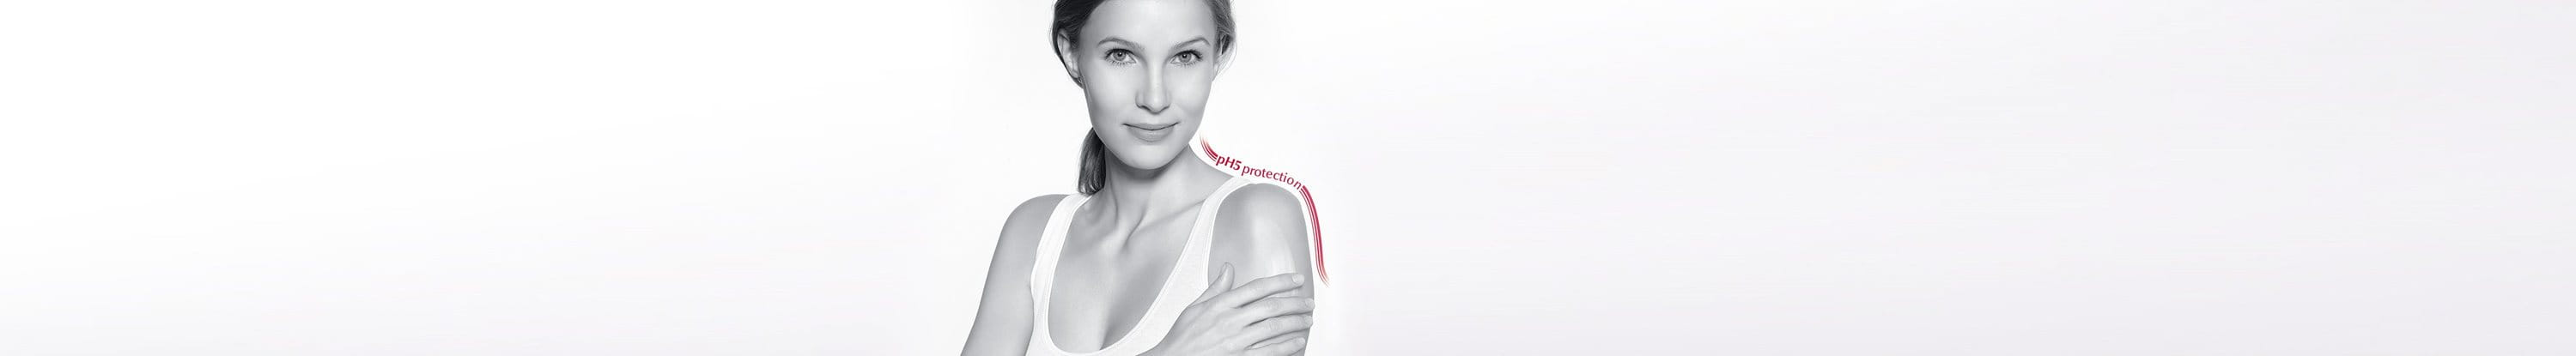 Woman applying lotion on her shoulder and packshot of  Eucerin pH5 Skin-Protection Lotion